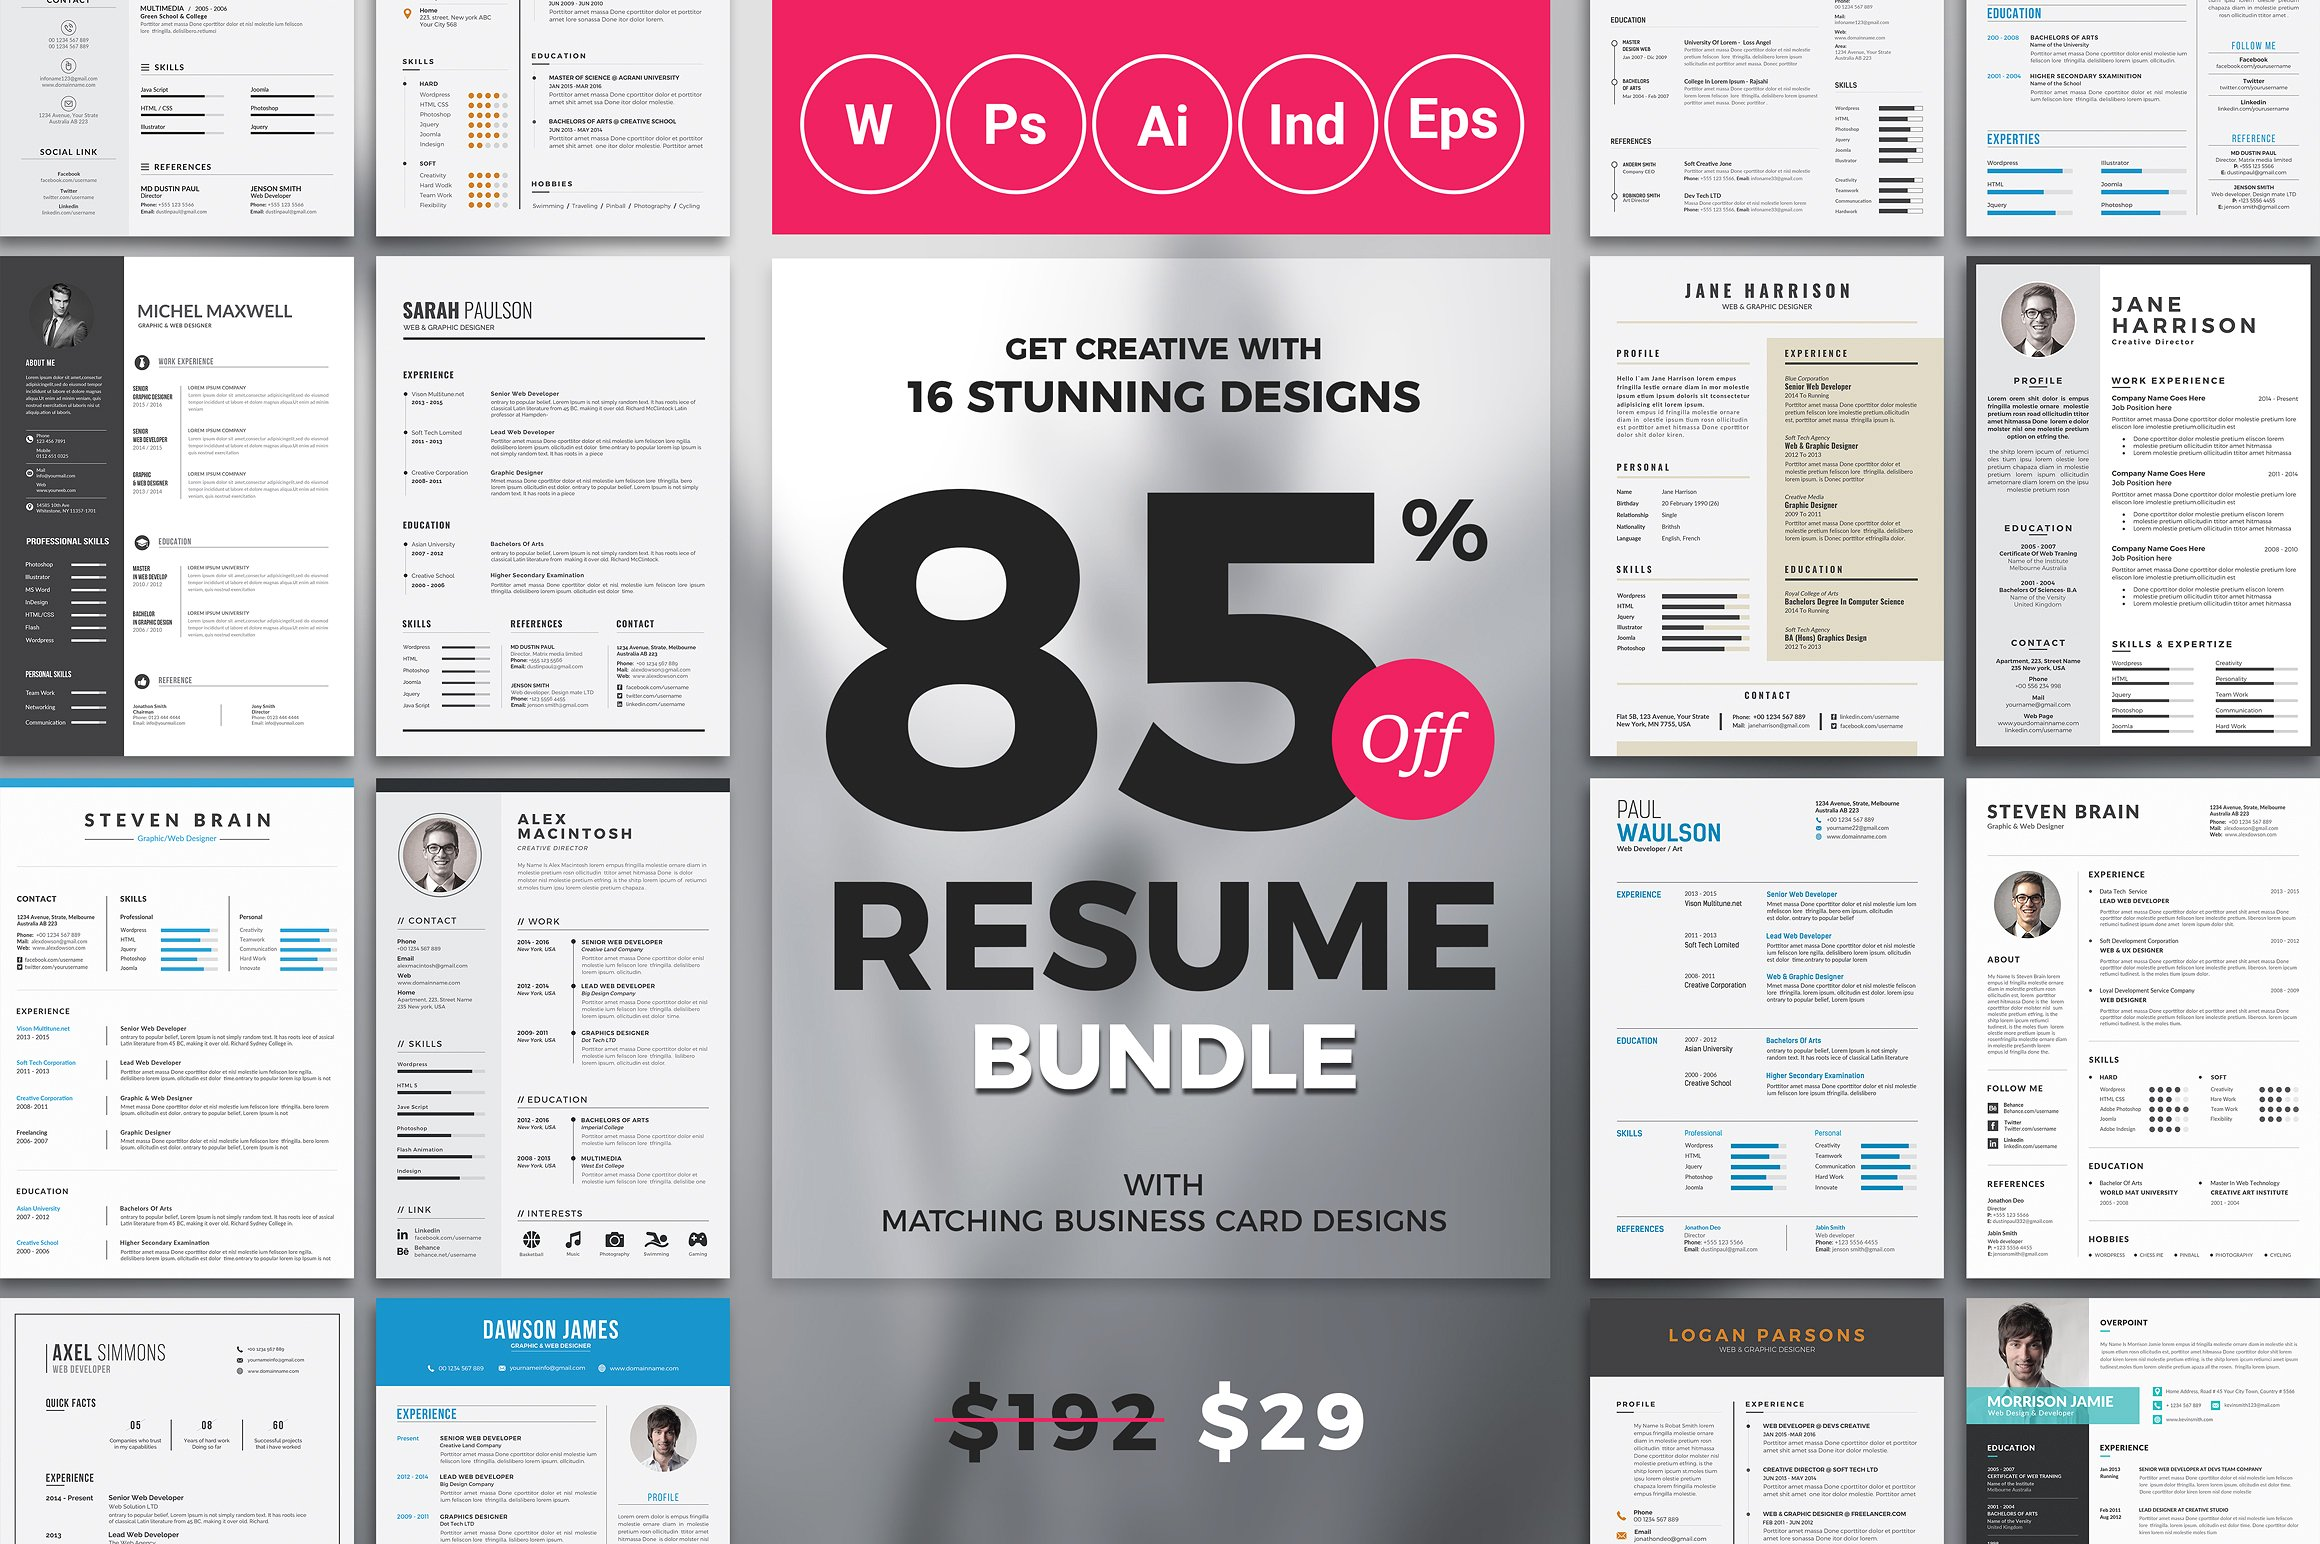 Resumes – Work-from-Home Jobs